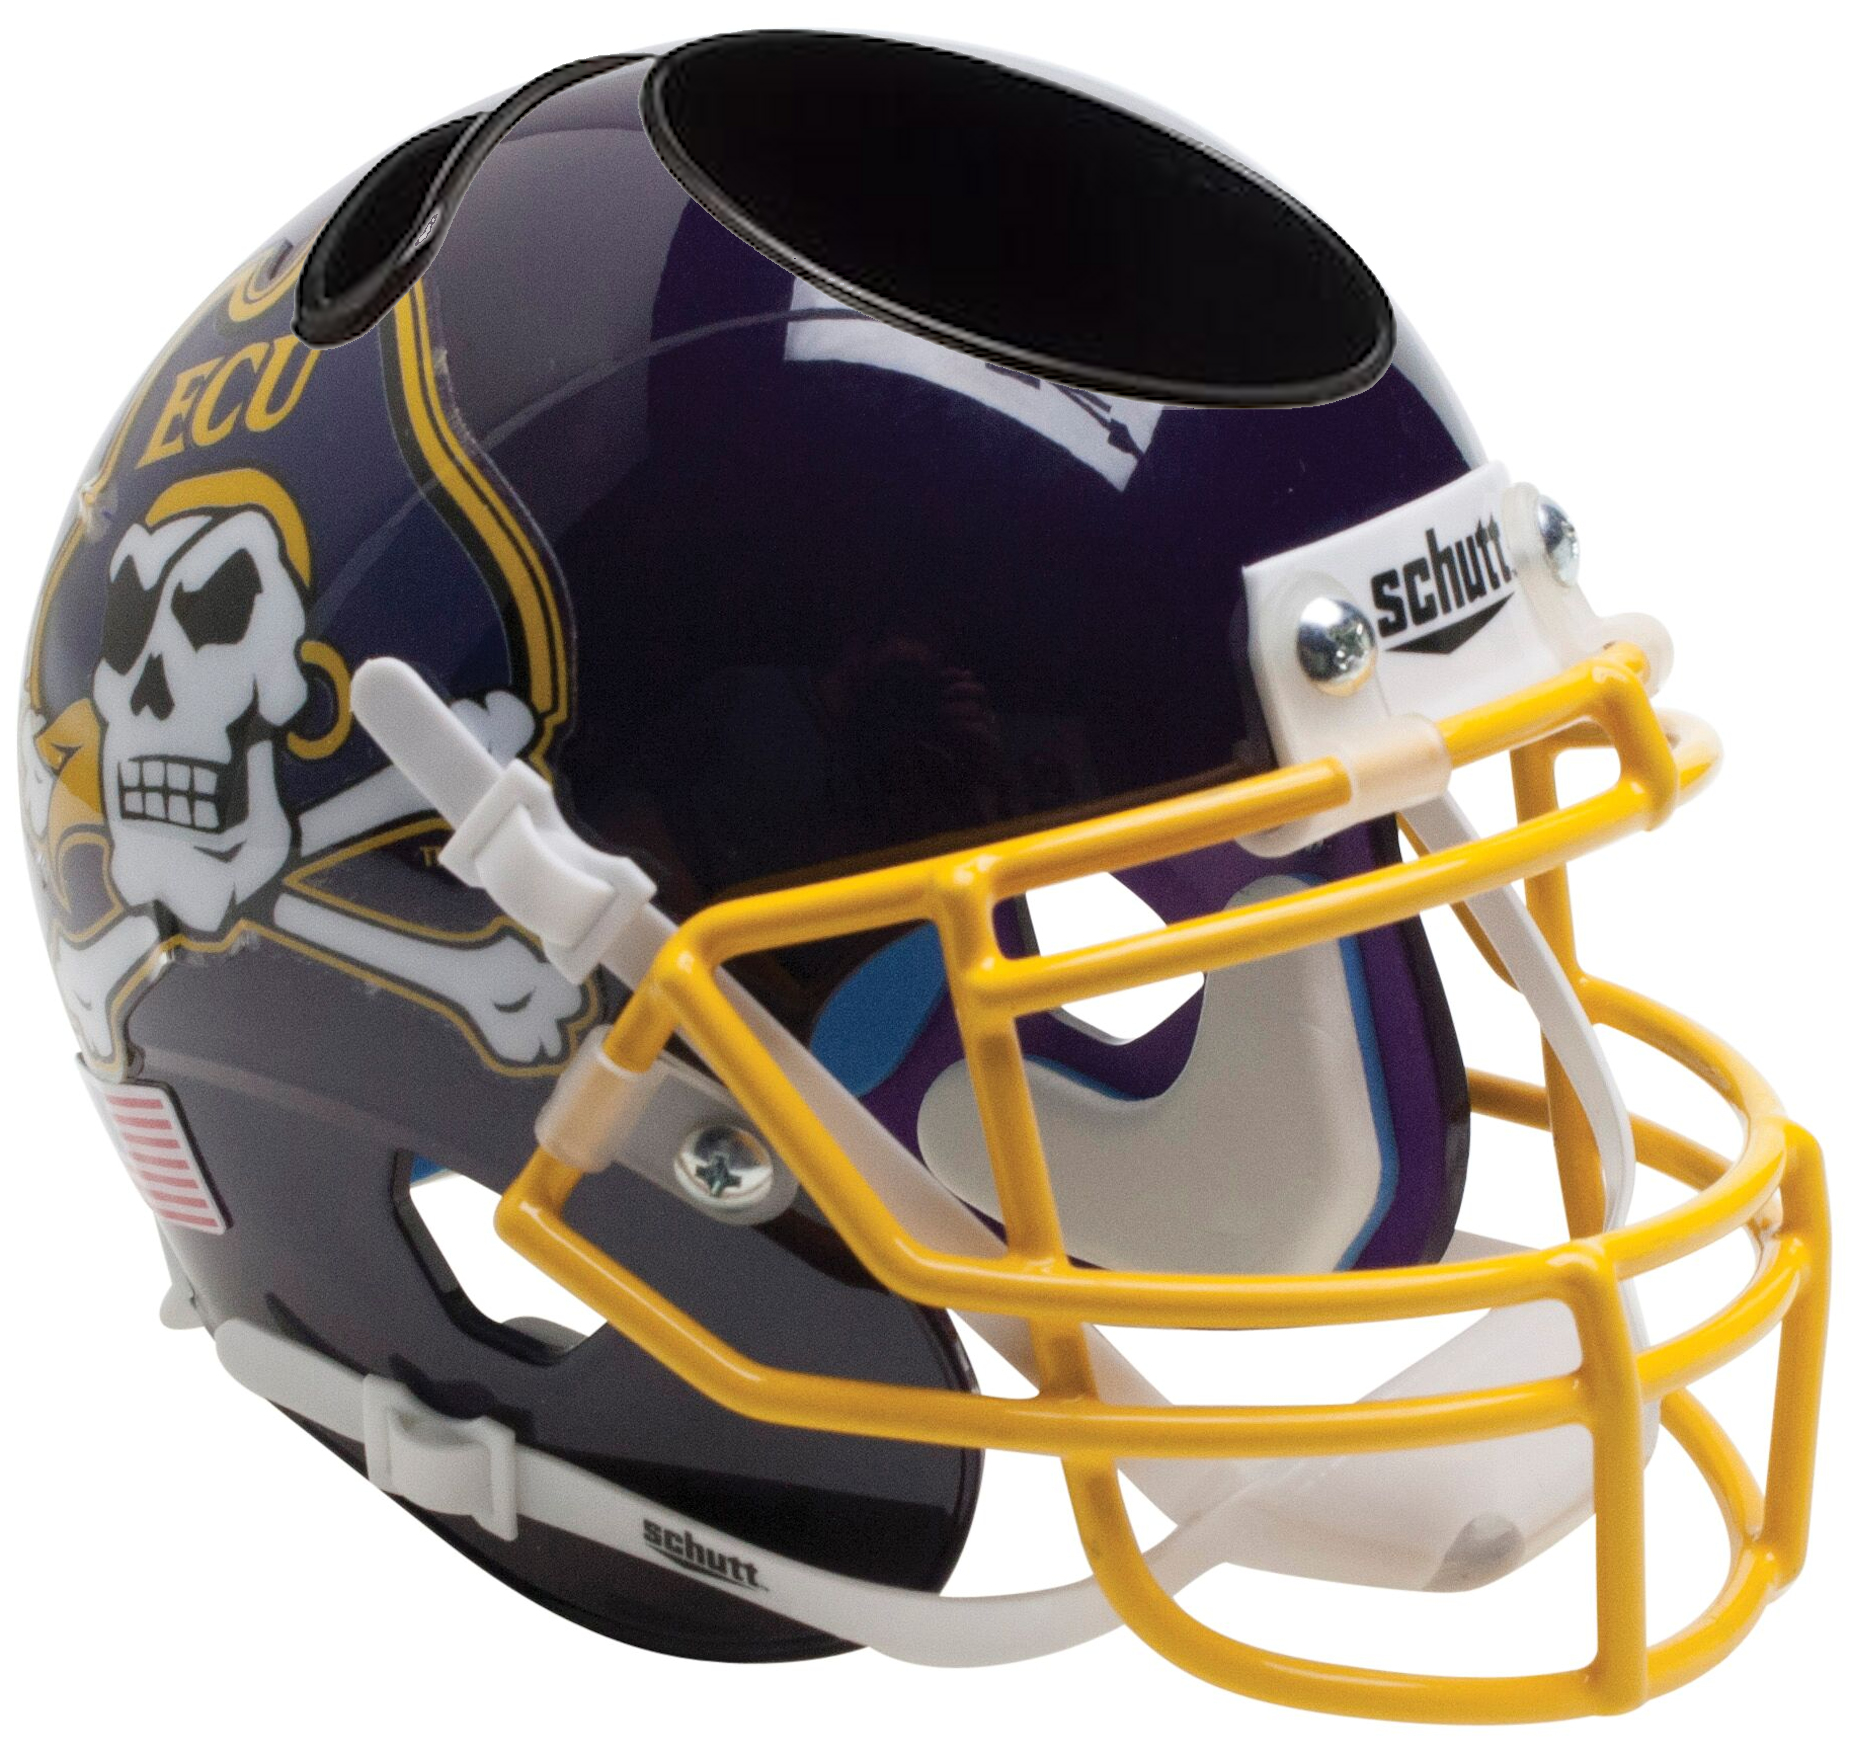 East Carolina Pirates Miniature Football Helmet Desk Caddy <B>Yellow Mask</B>